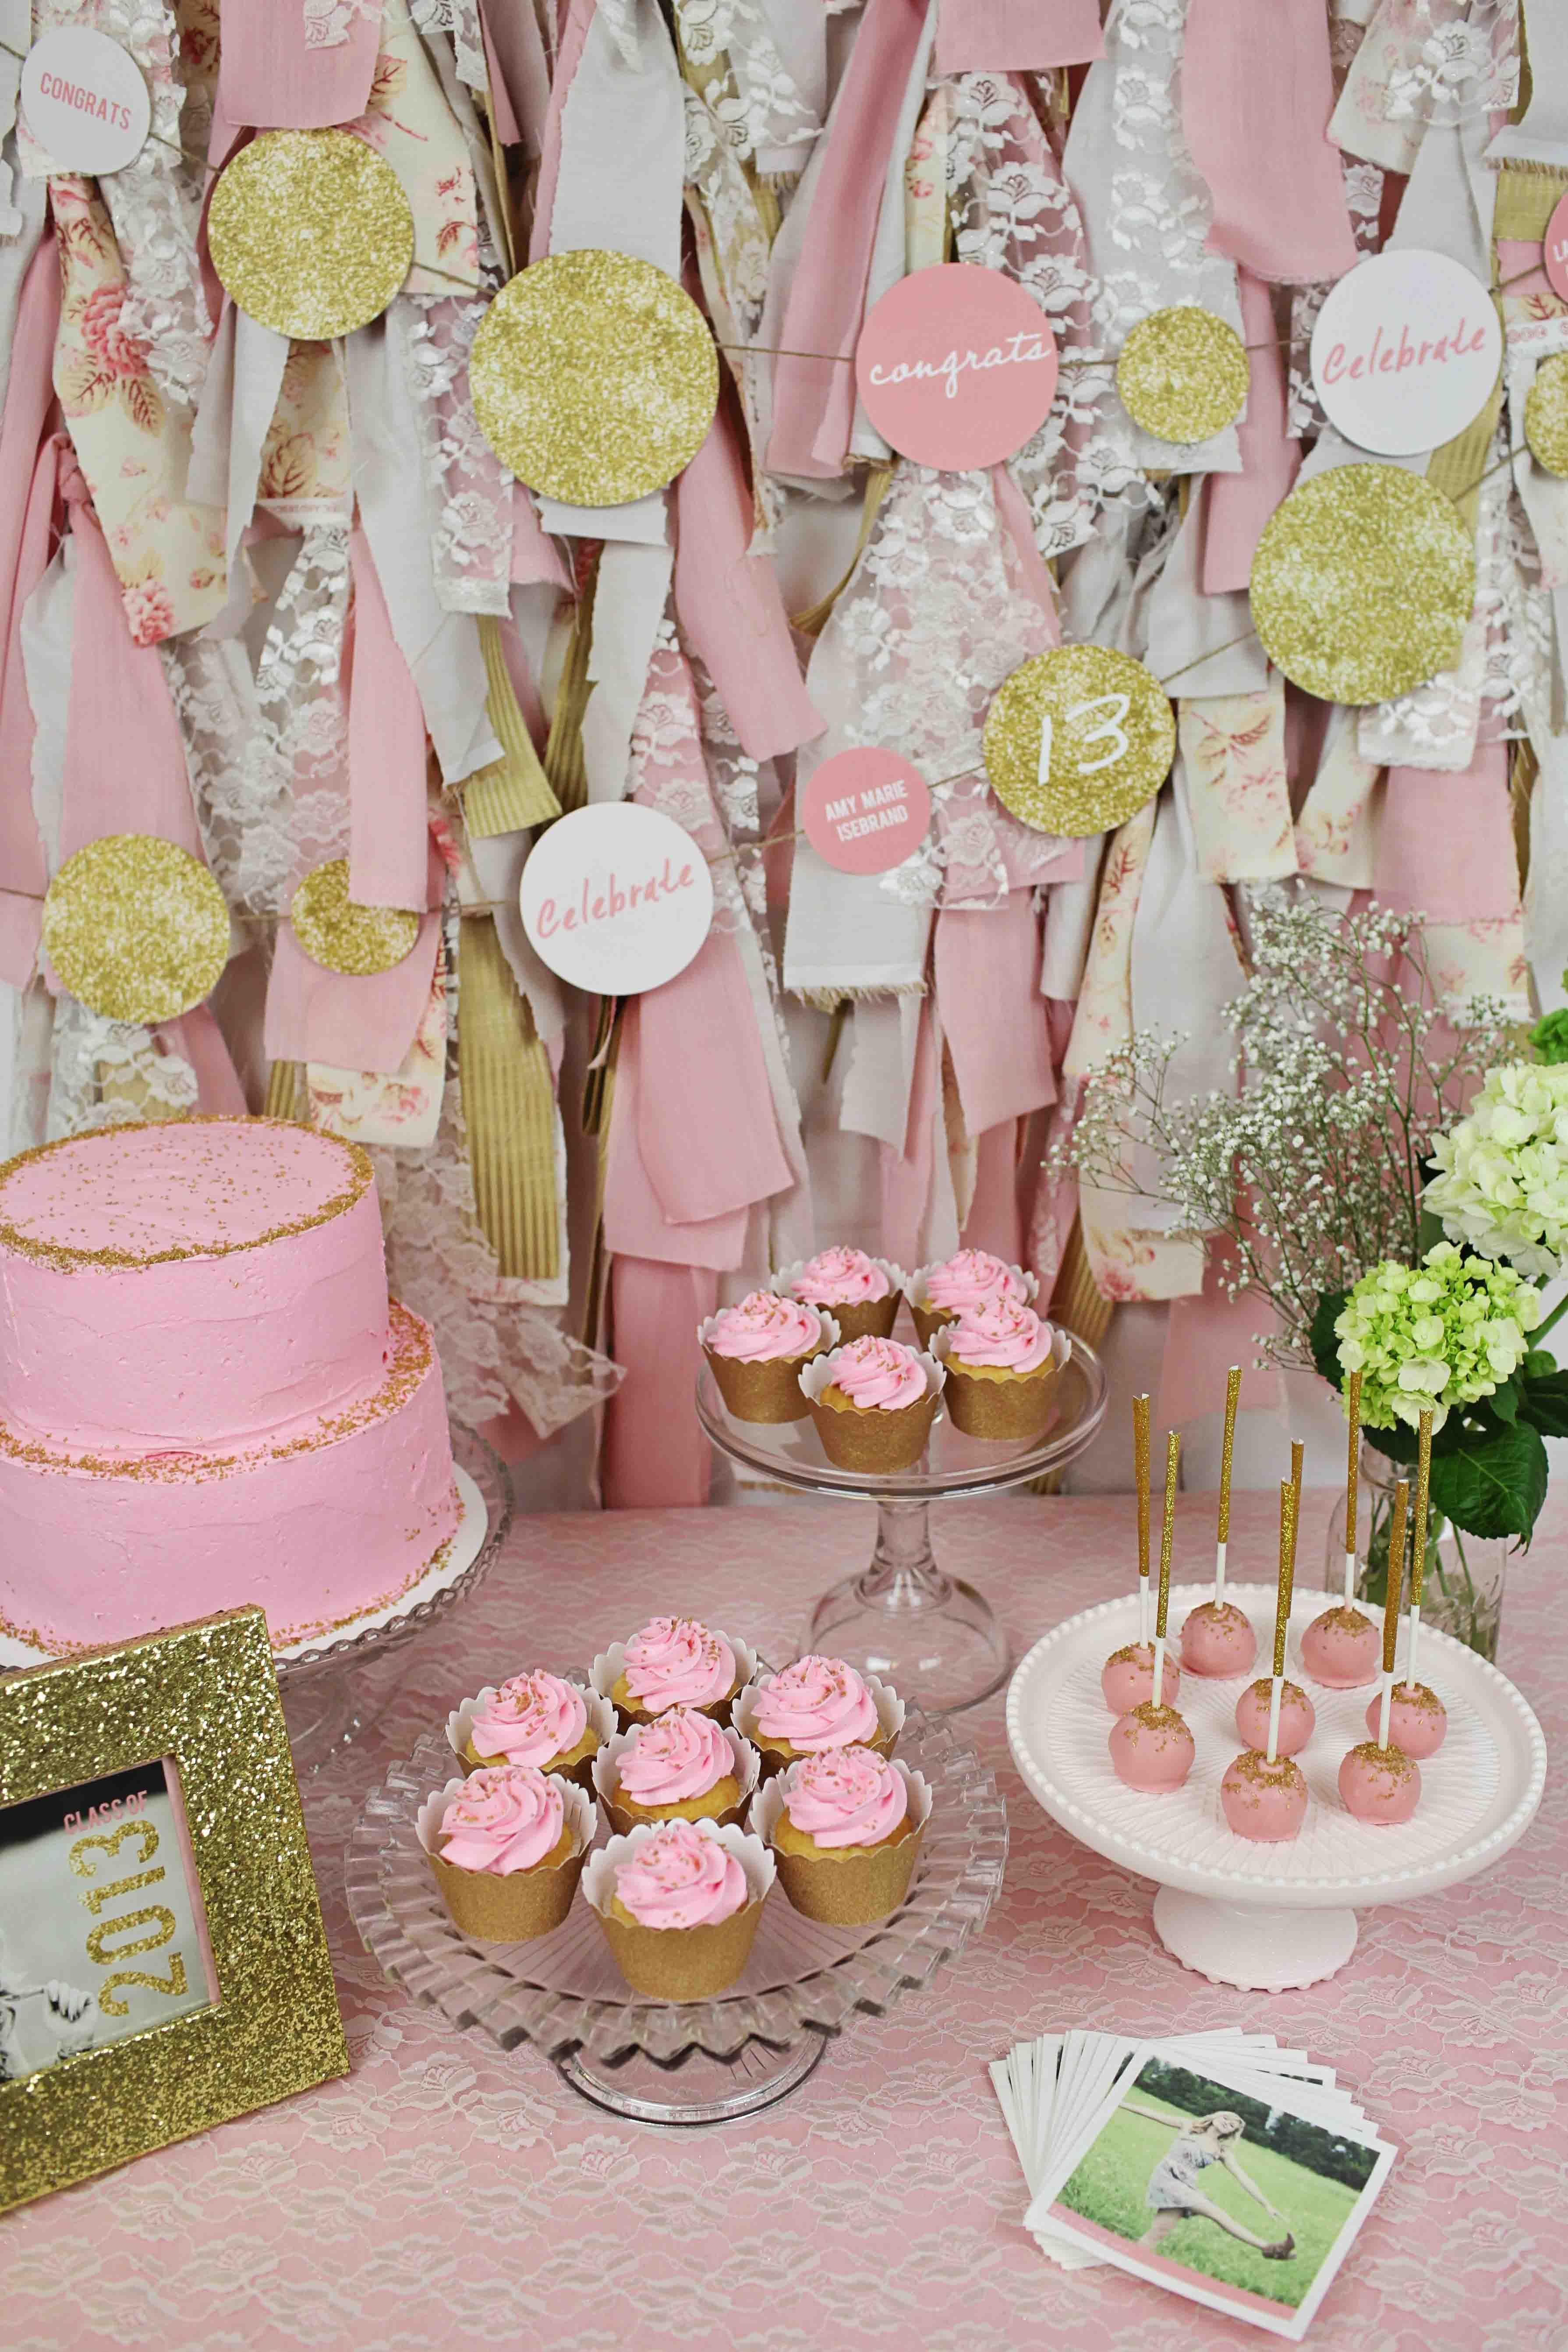 Glam Graduation Party Ideas